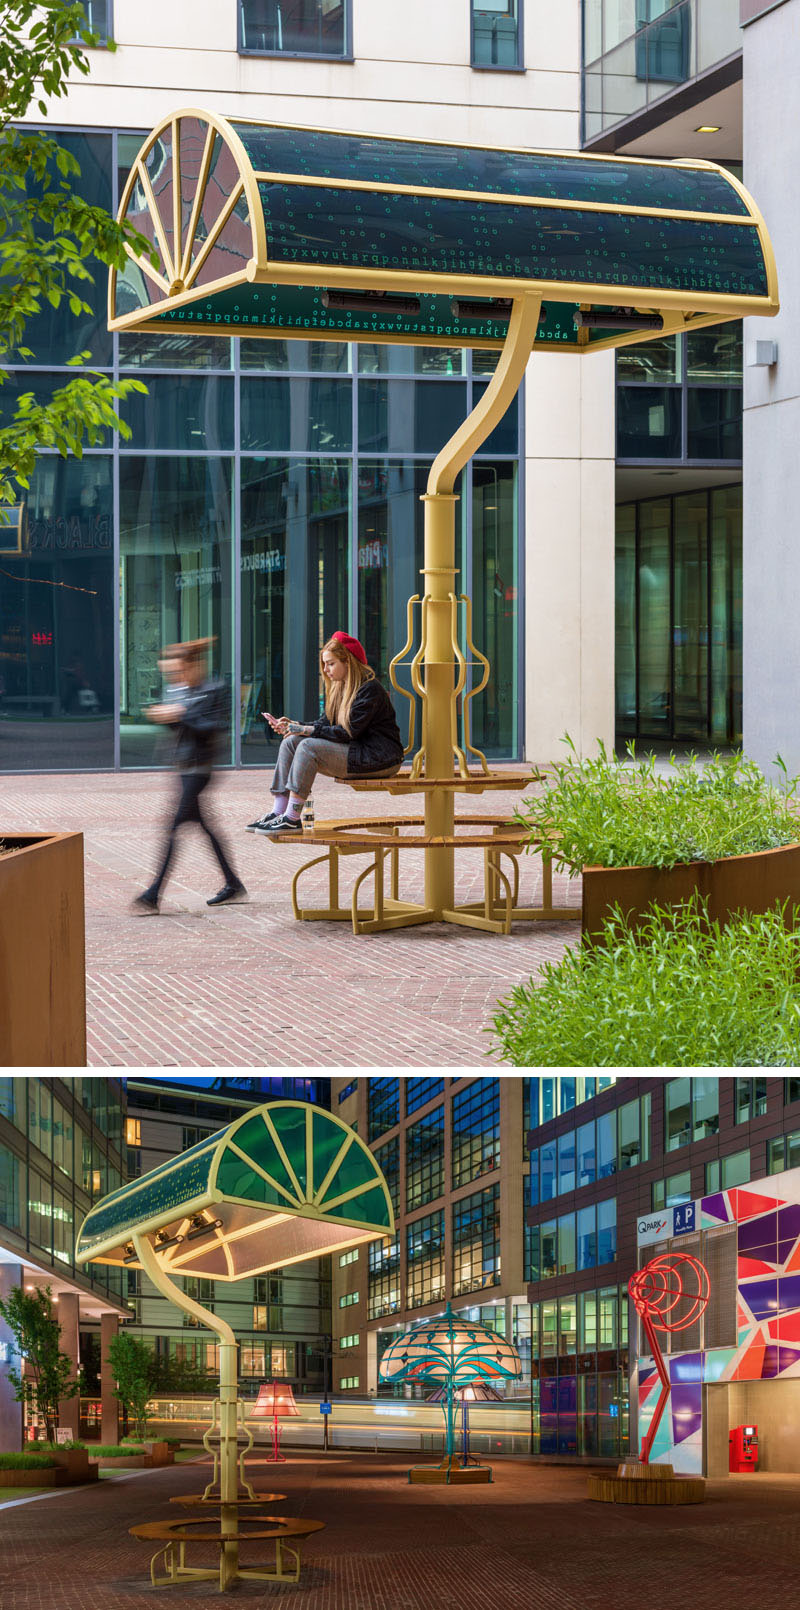 oversized-lamps-public-art-installation-seating-030718-1207-04.jpg